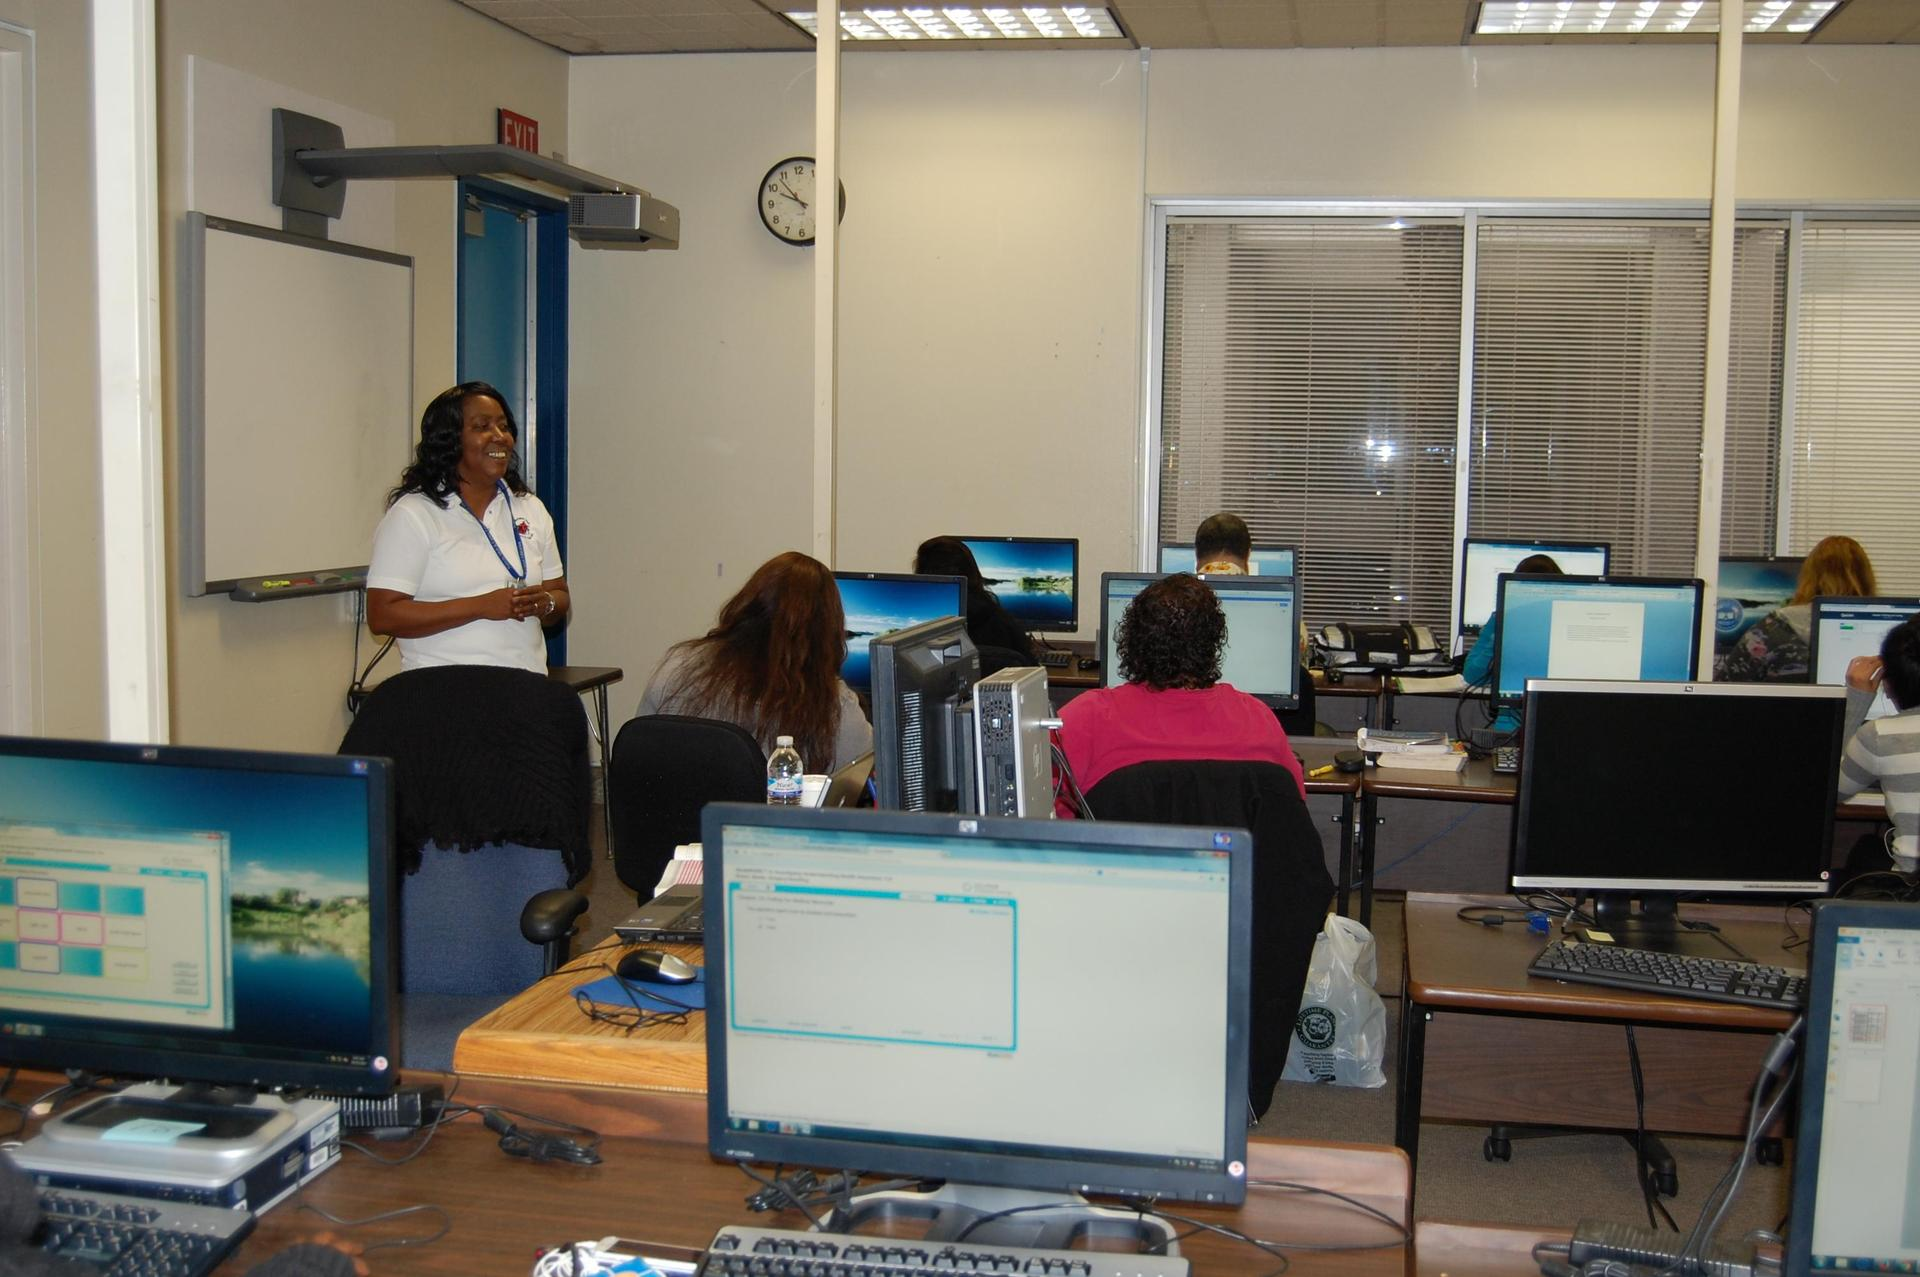 medi-cal medical insurance billing and coding class